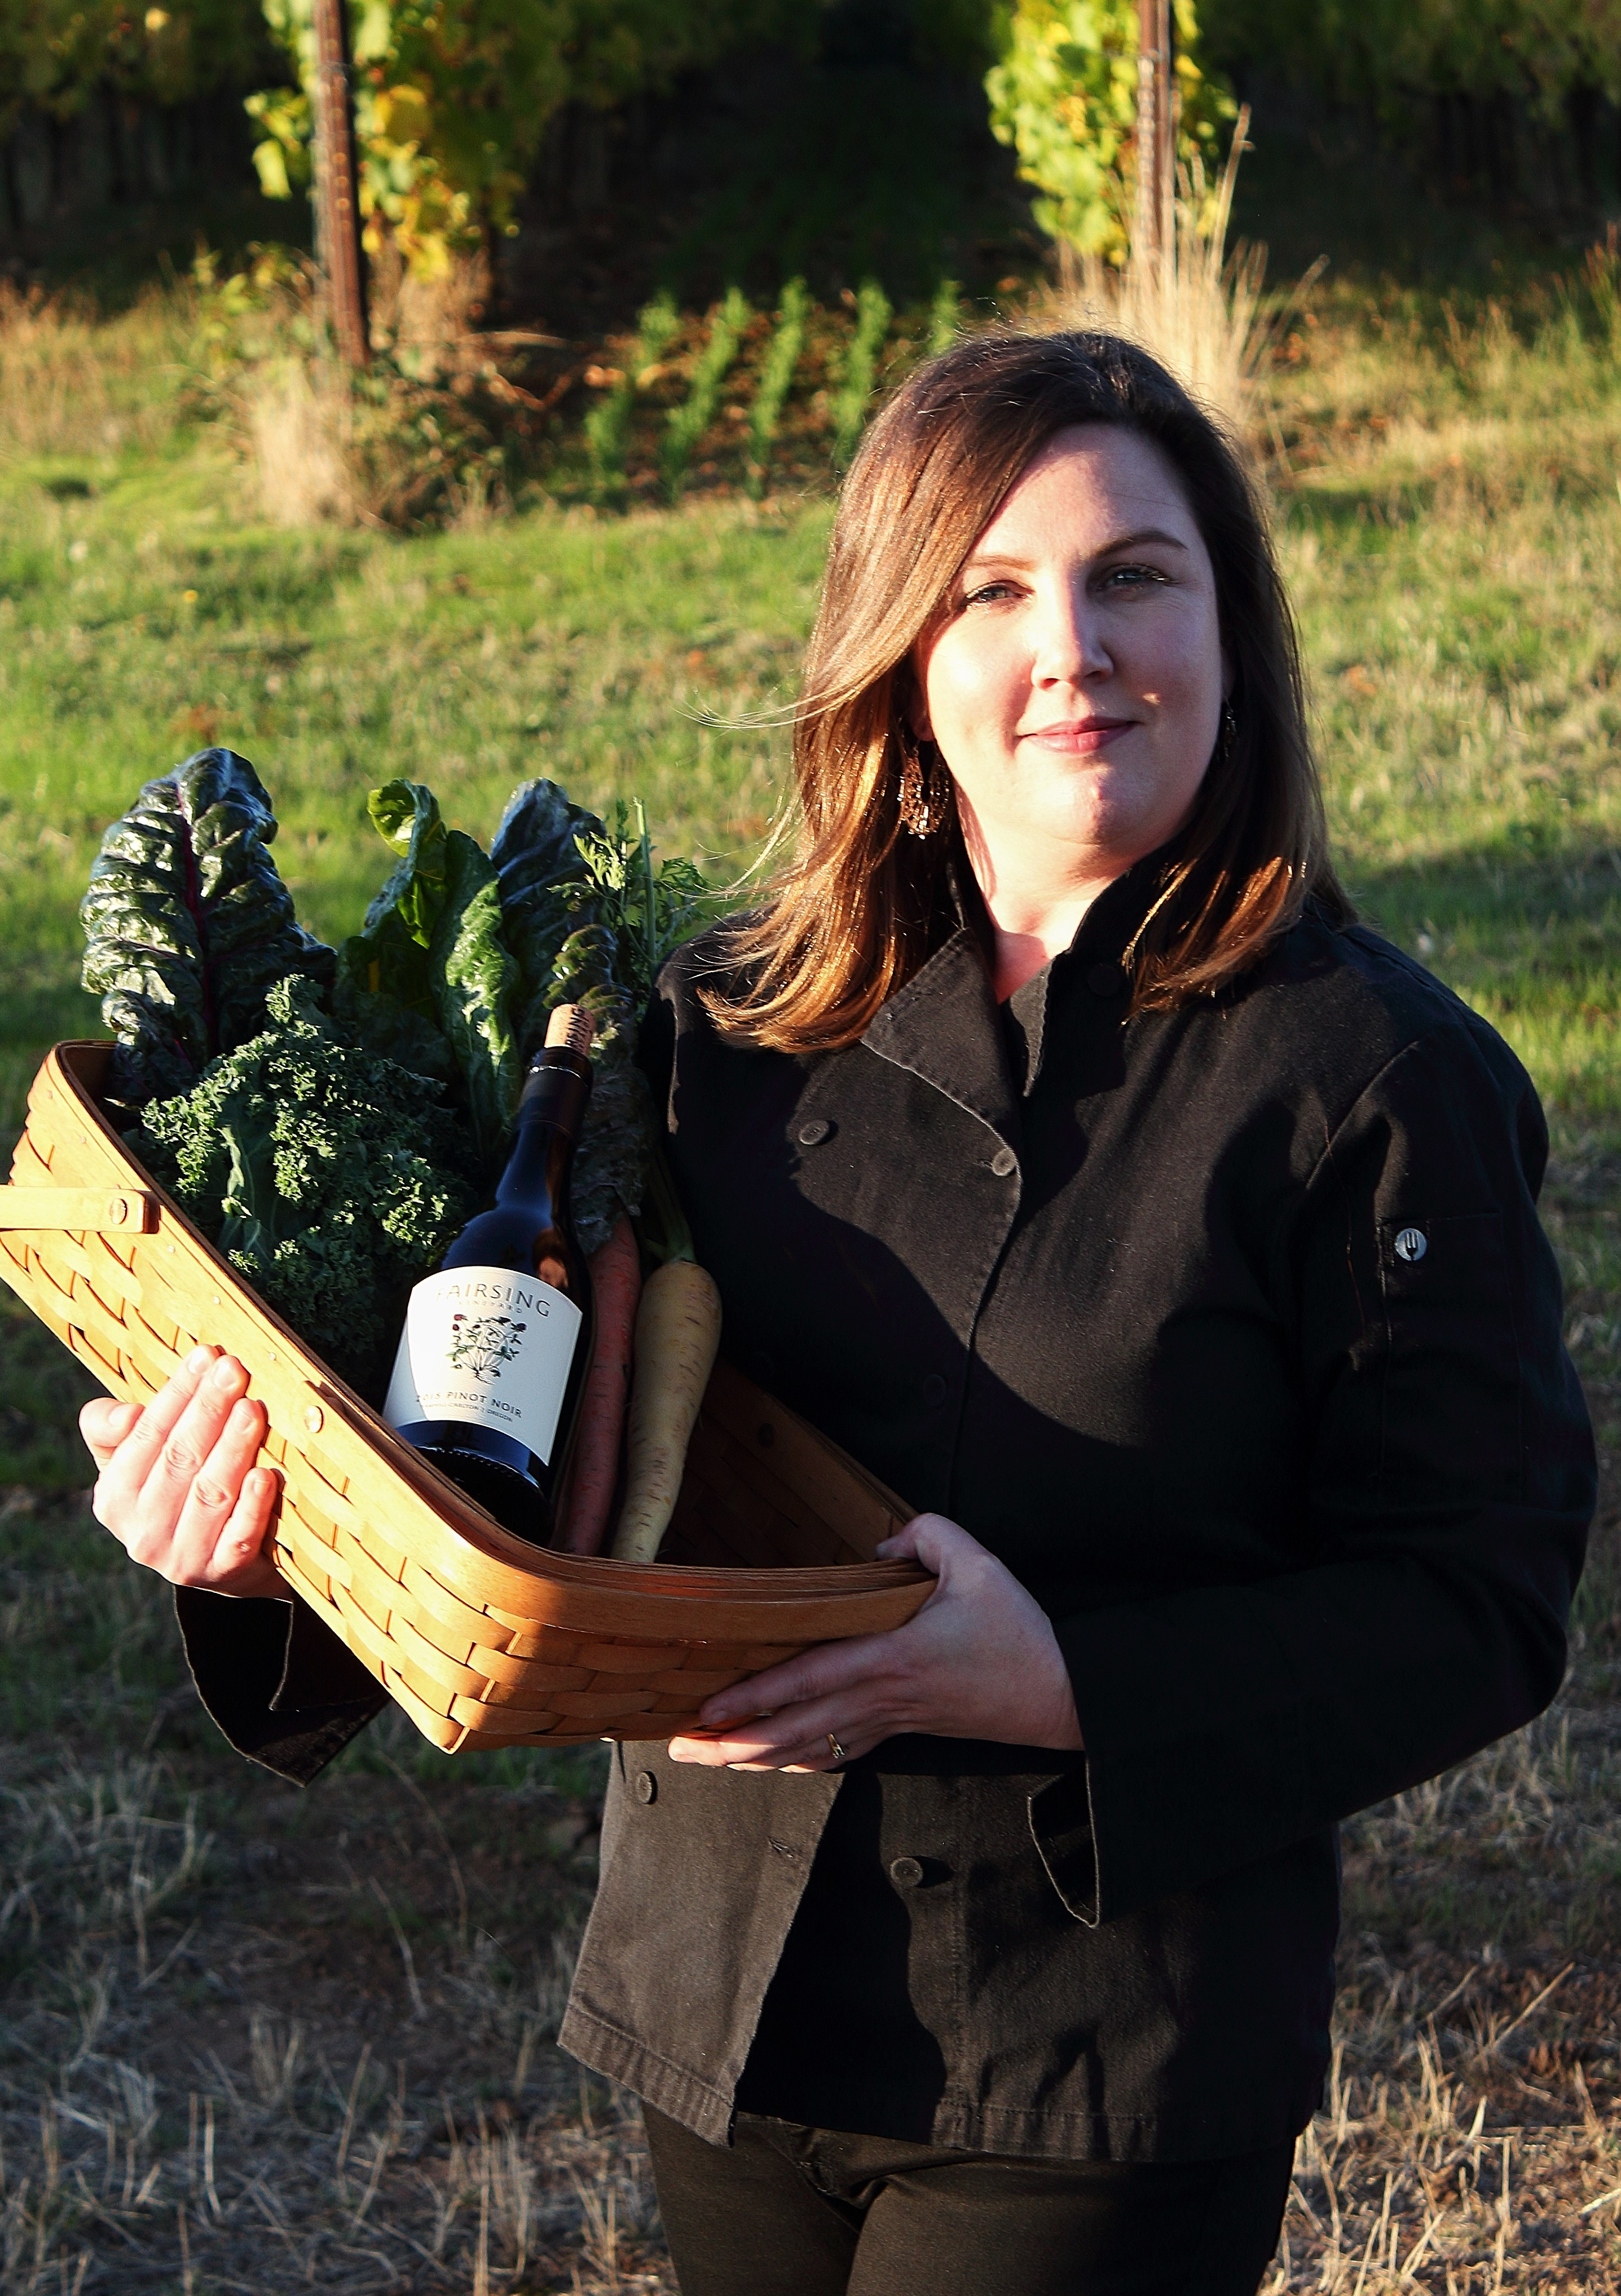 Fairsing Vineyard Chef Rebecca Clarke in the vineyard with wine and harvested produce